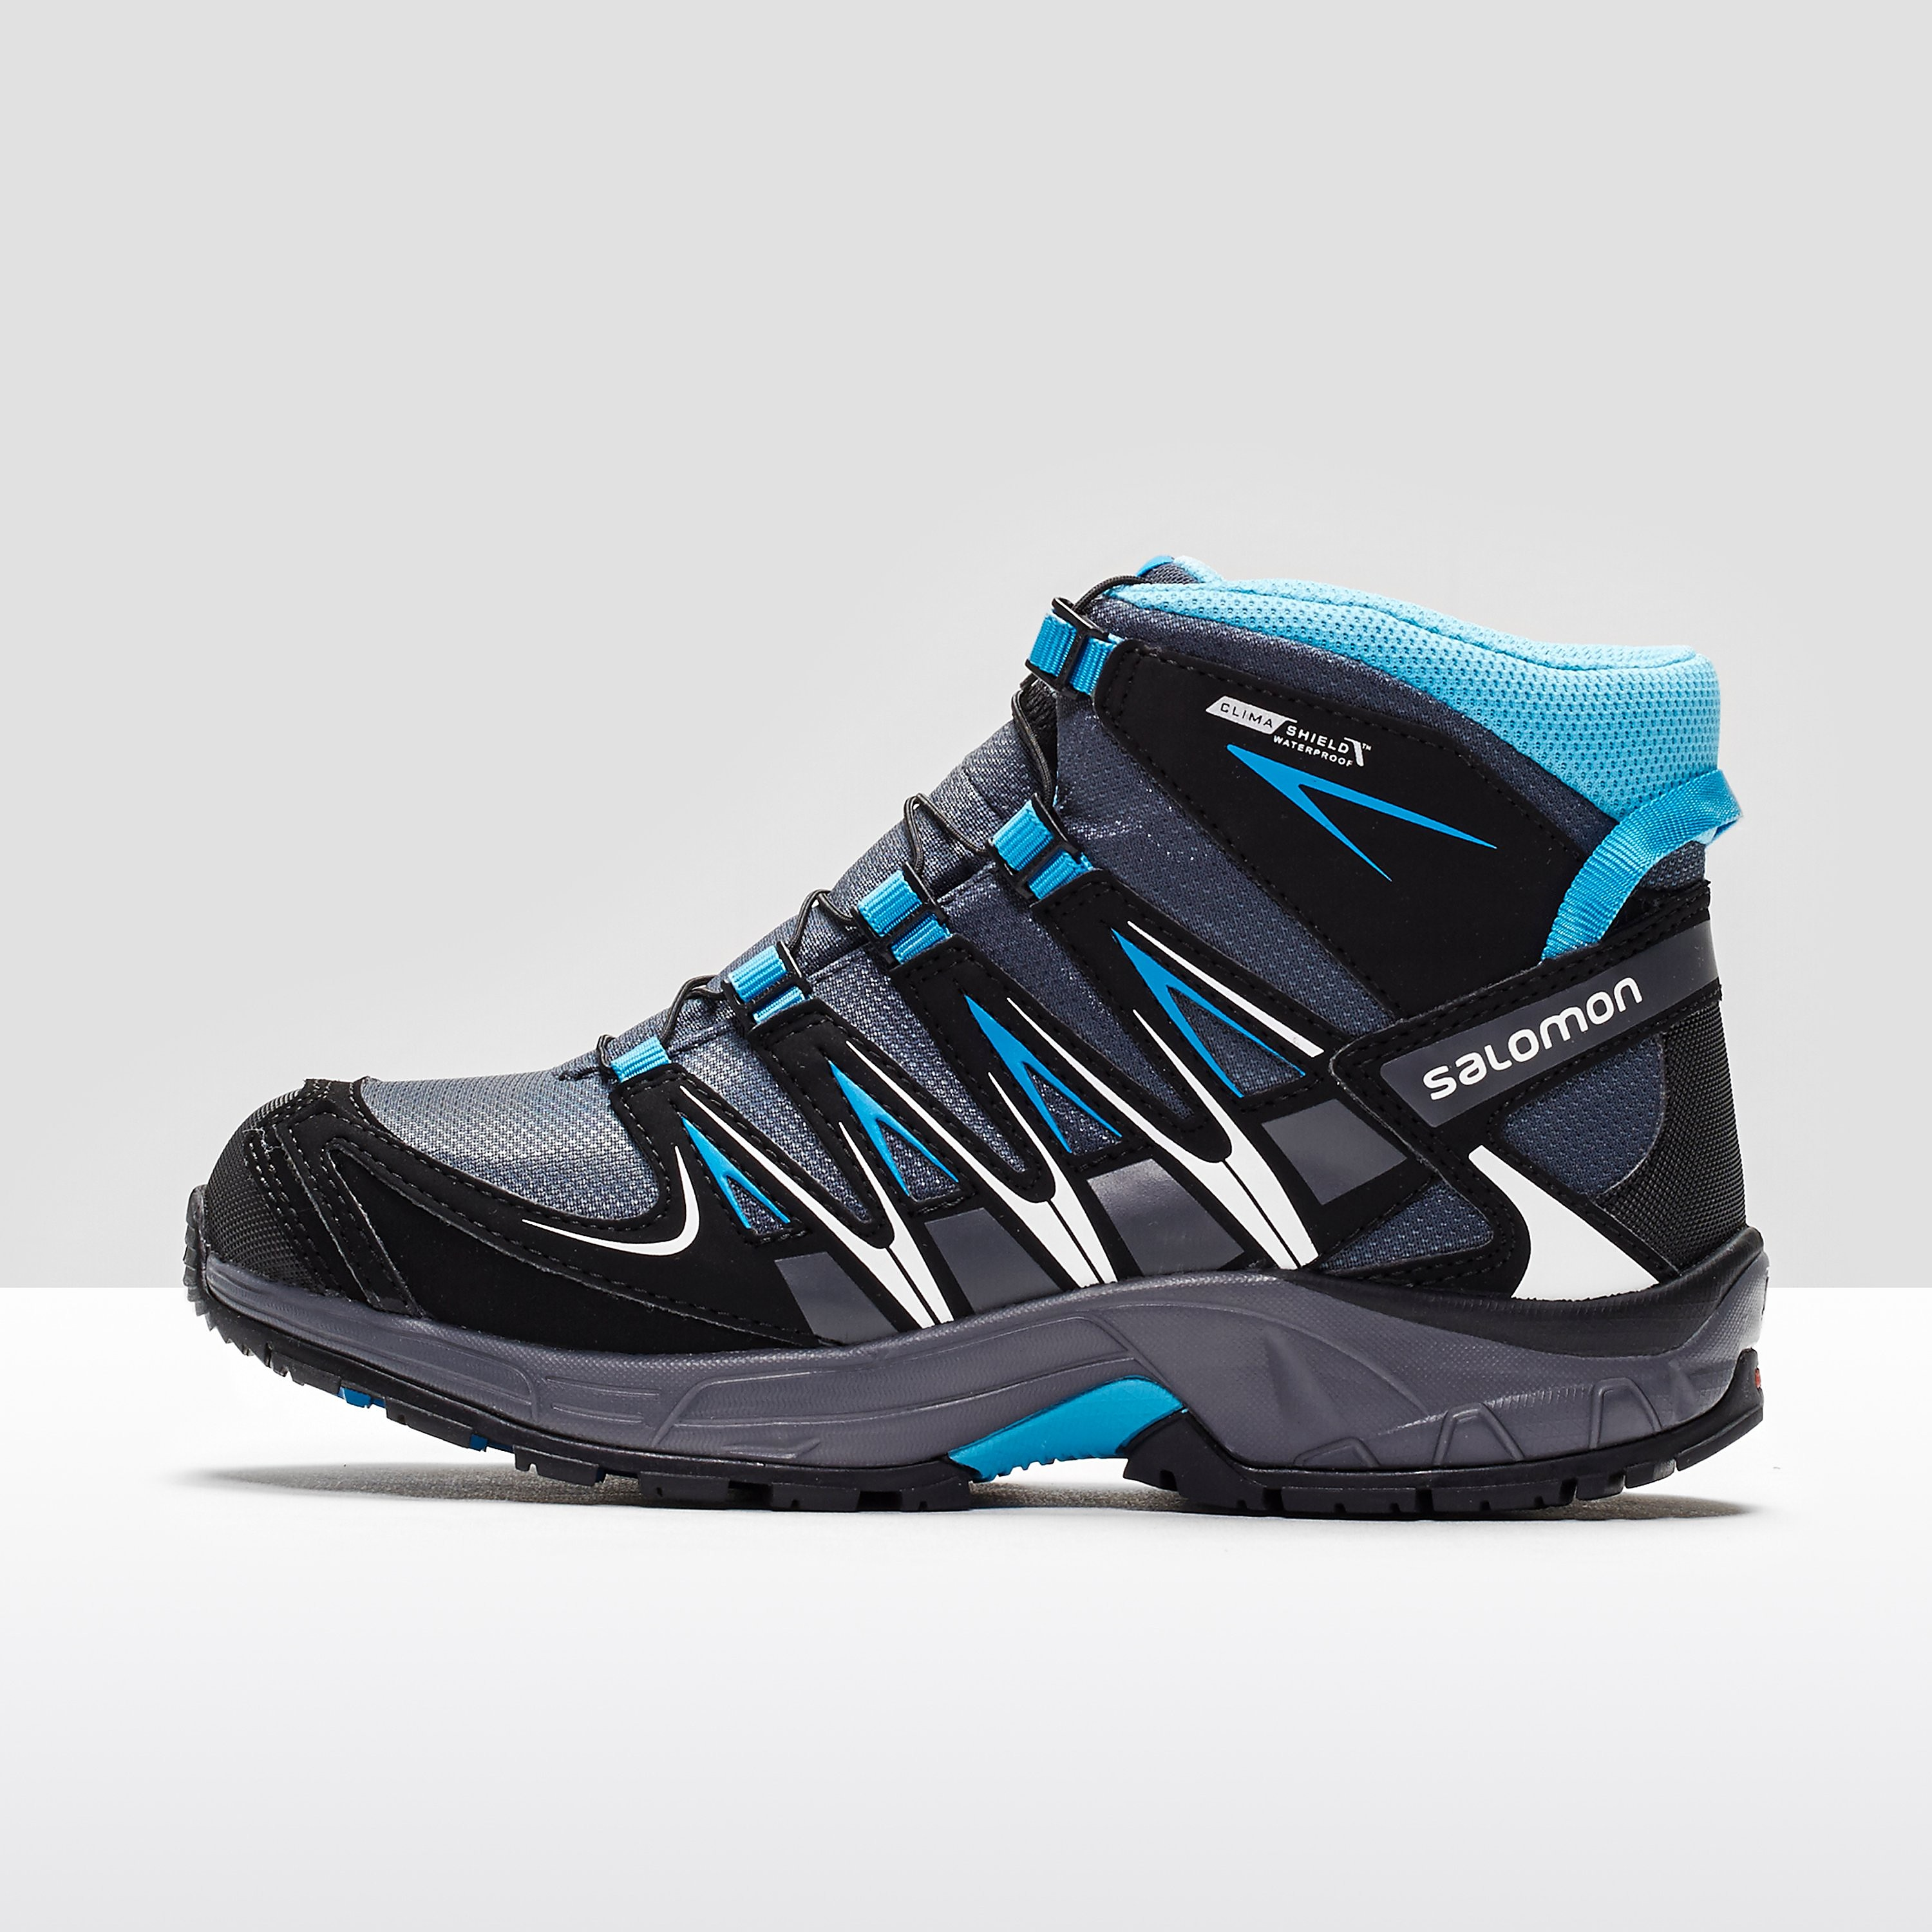 Salomon XA Pro 3D Mid Junior Trail Running Shoes